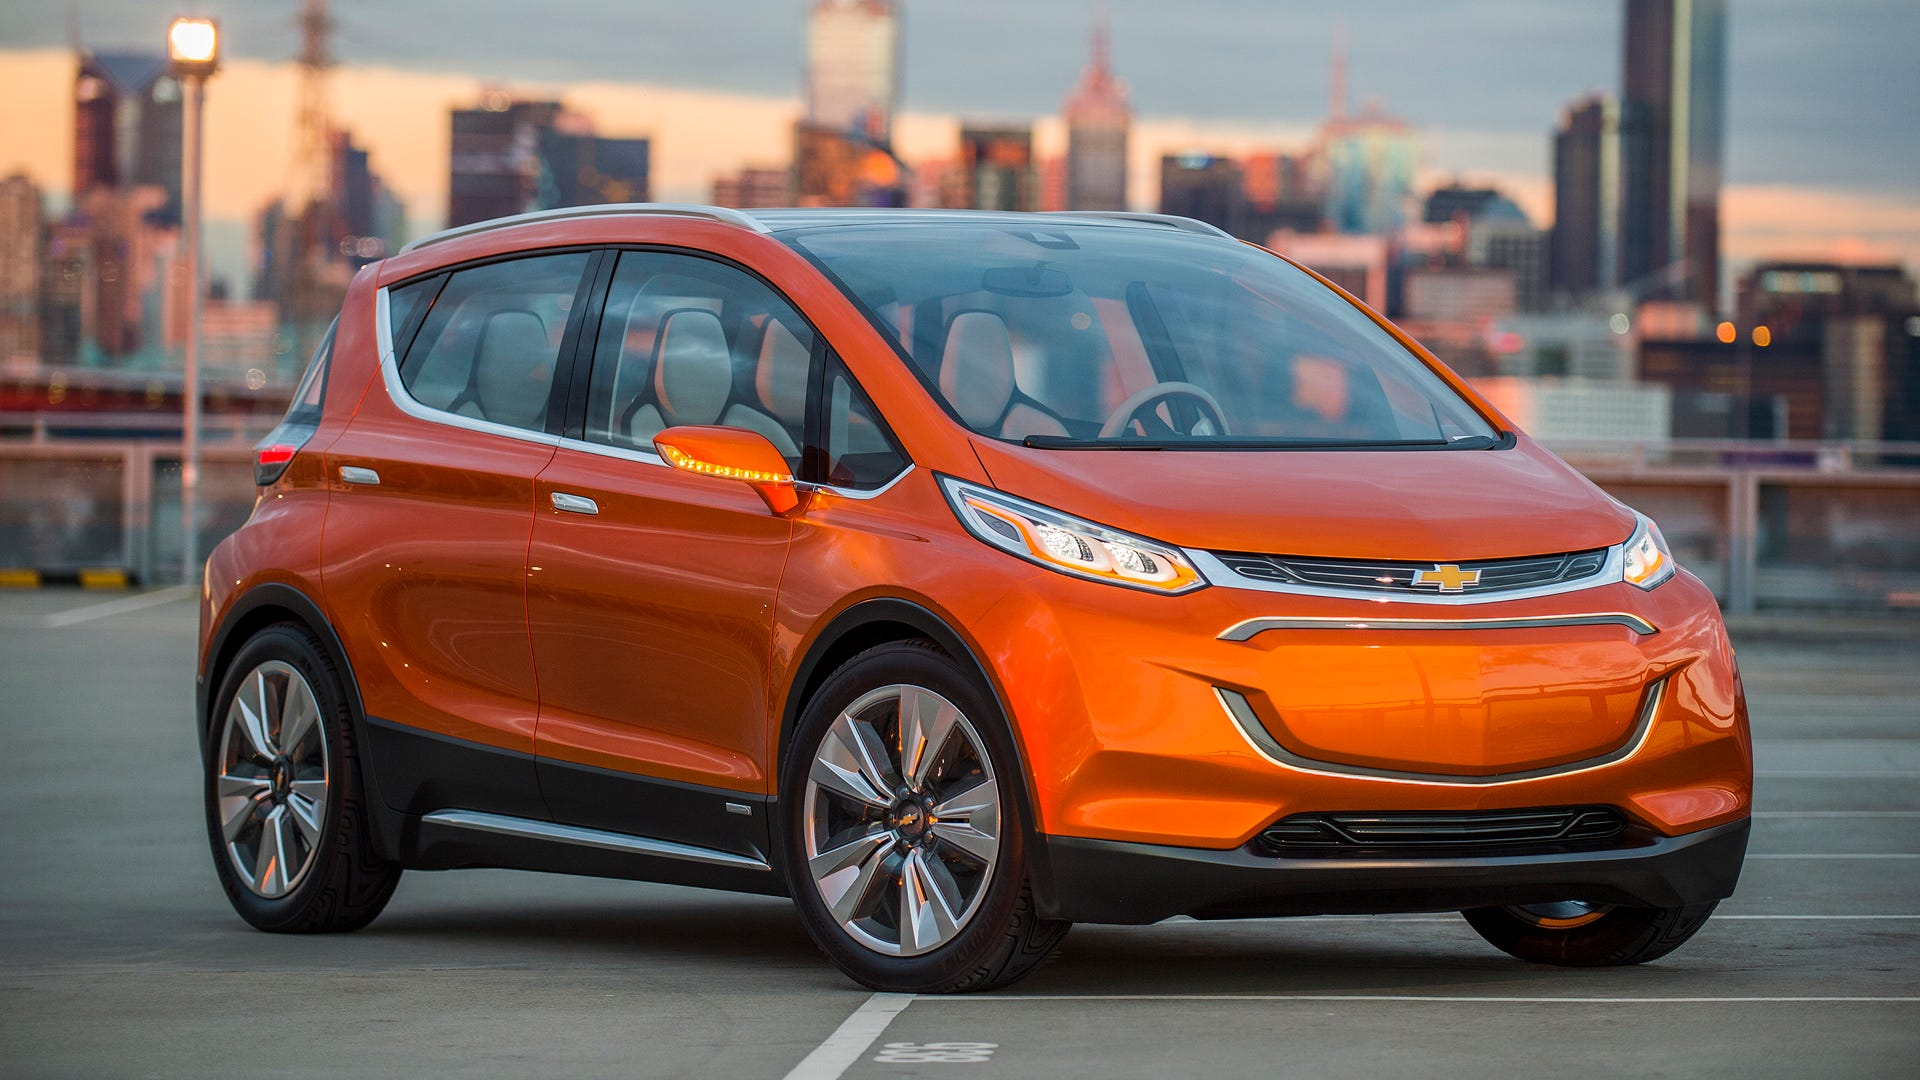 Chevy Bolt Battery Substitute Begins as Remember Moves Forward